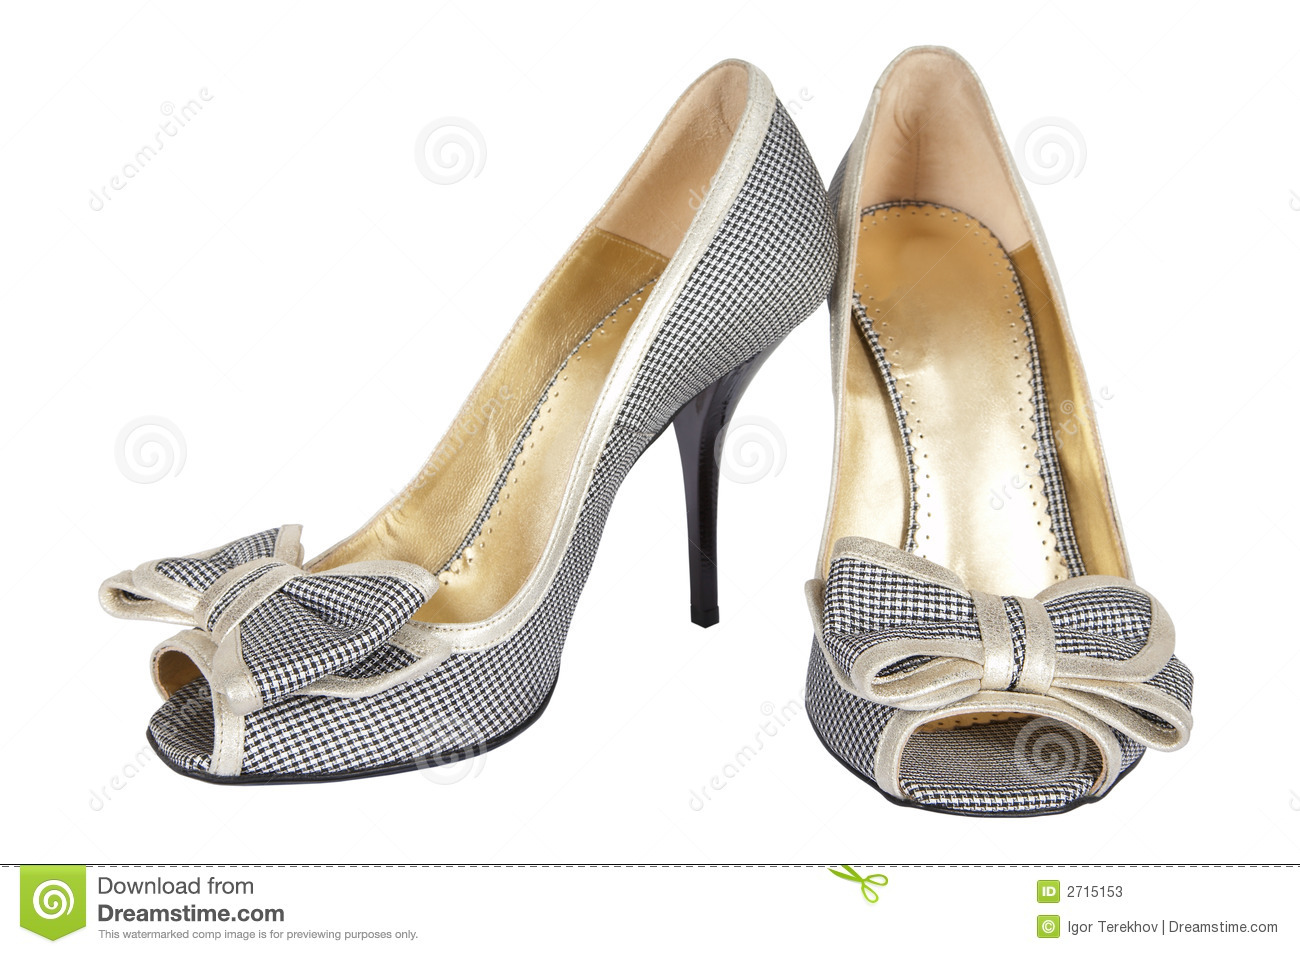 Shoes with a bow